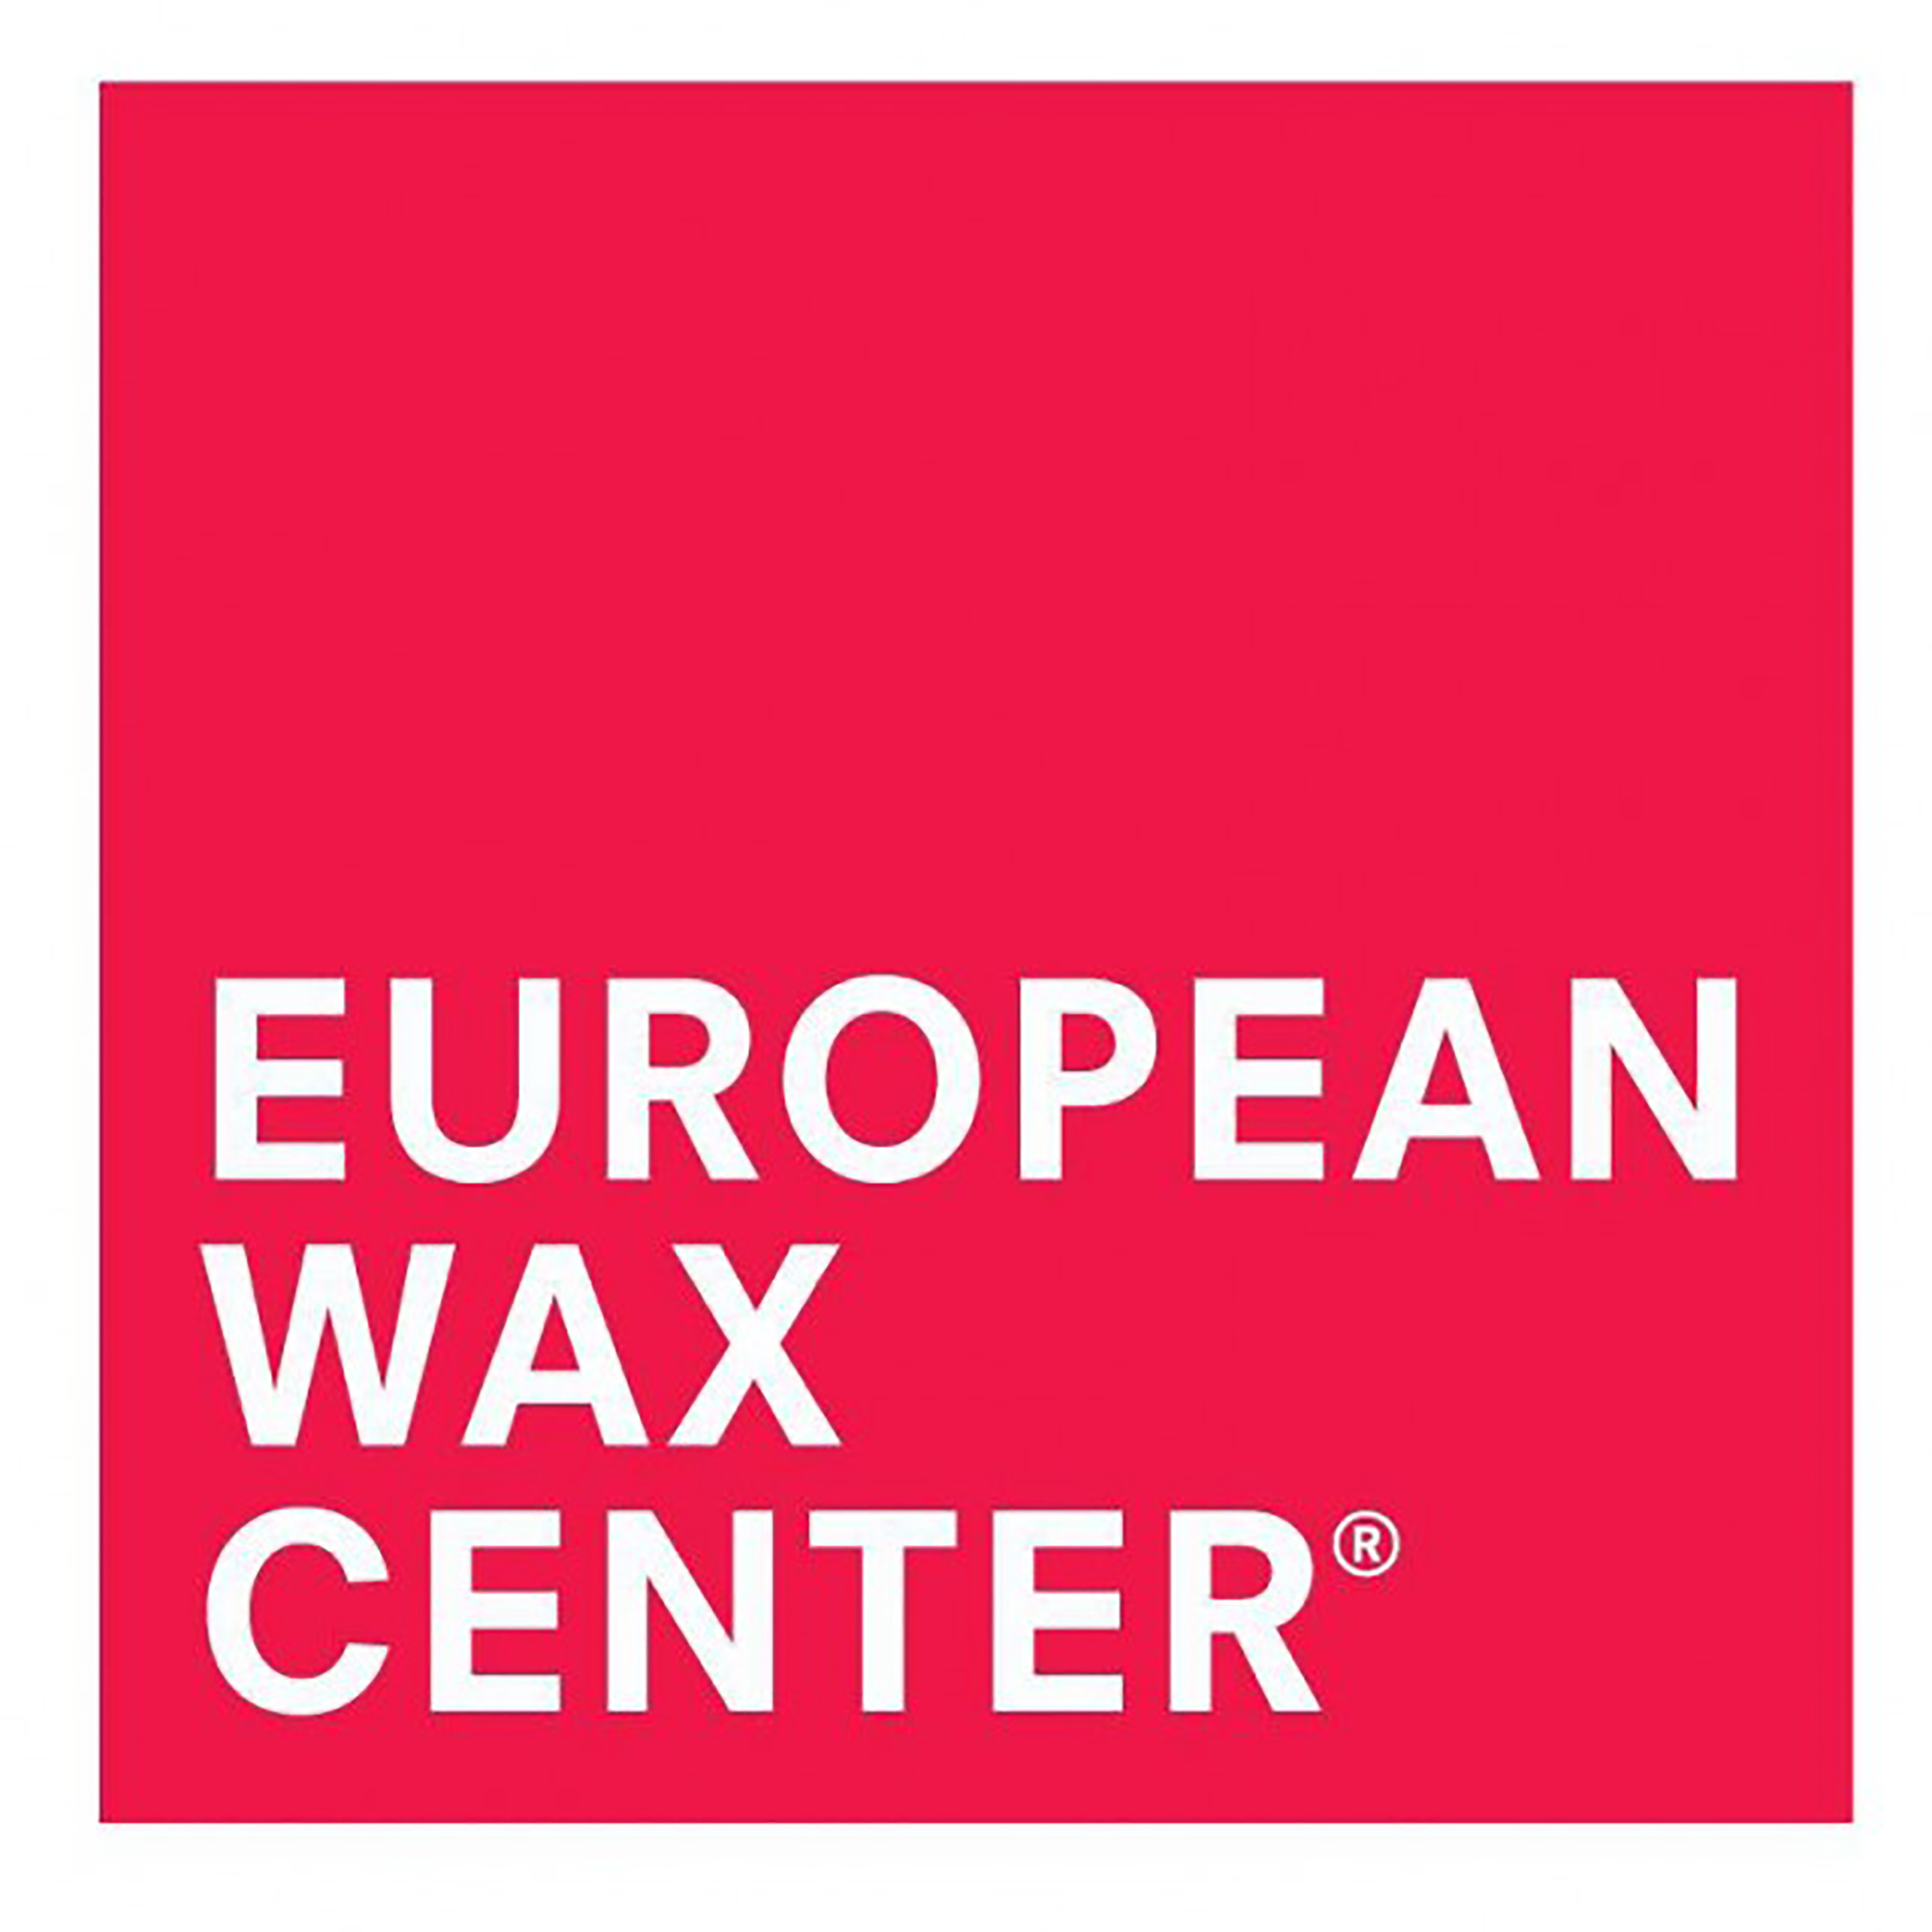 European-Wax-Center-logo-640x640-300-dpi.jpg